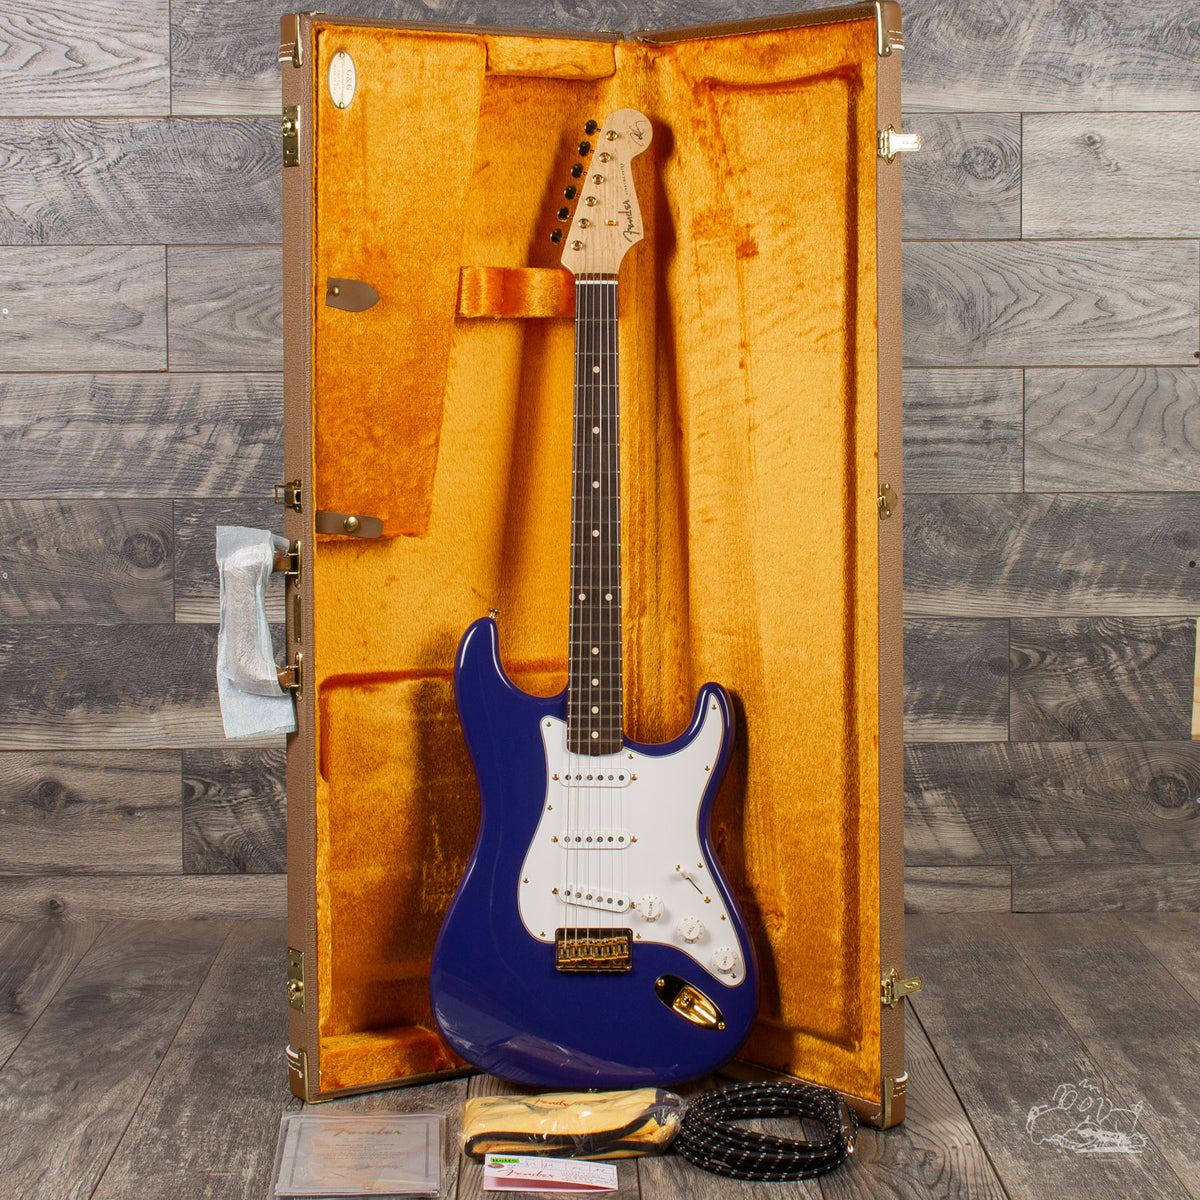 2015 Fender Custom Shop Robert Cray Stratocaster - Make Us An Offer